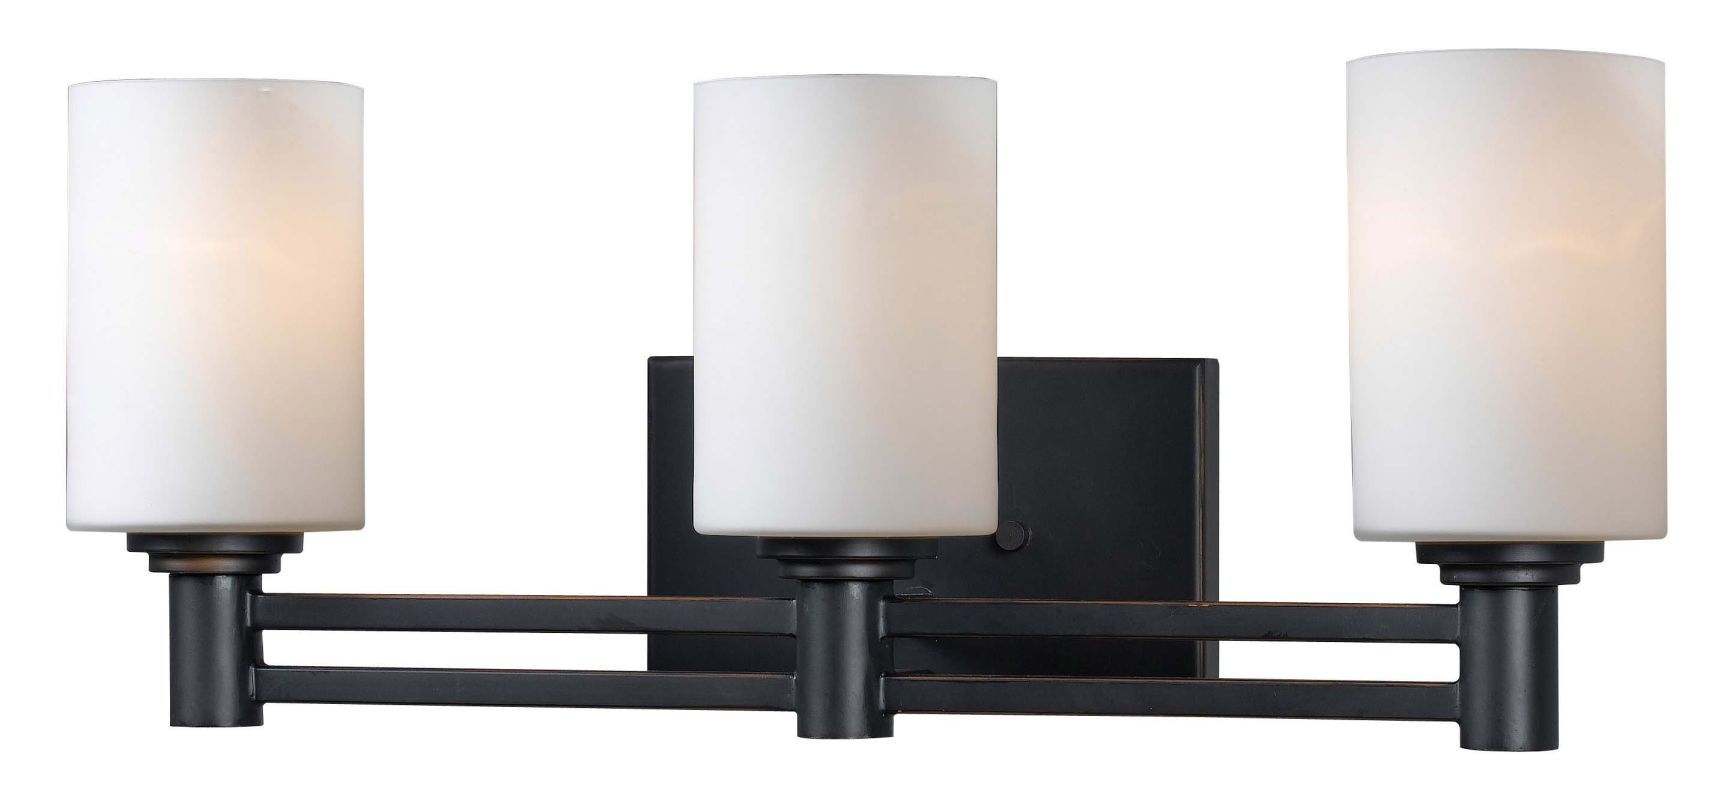 Kenroy Home 91933 Slender 3 Light Wall Sconce Oil Rubbed Bronze Indoor